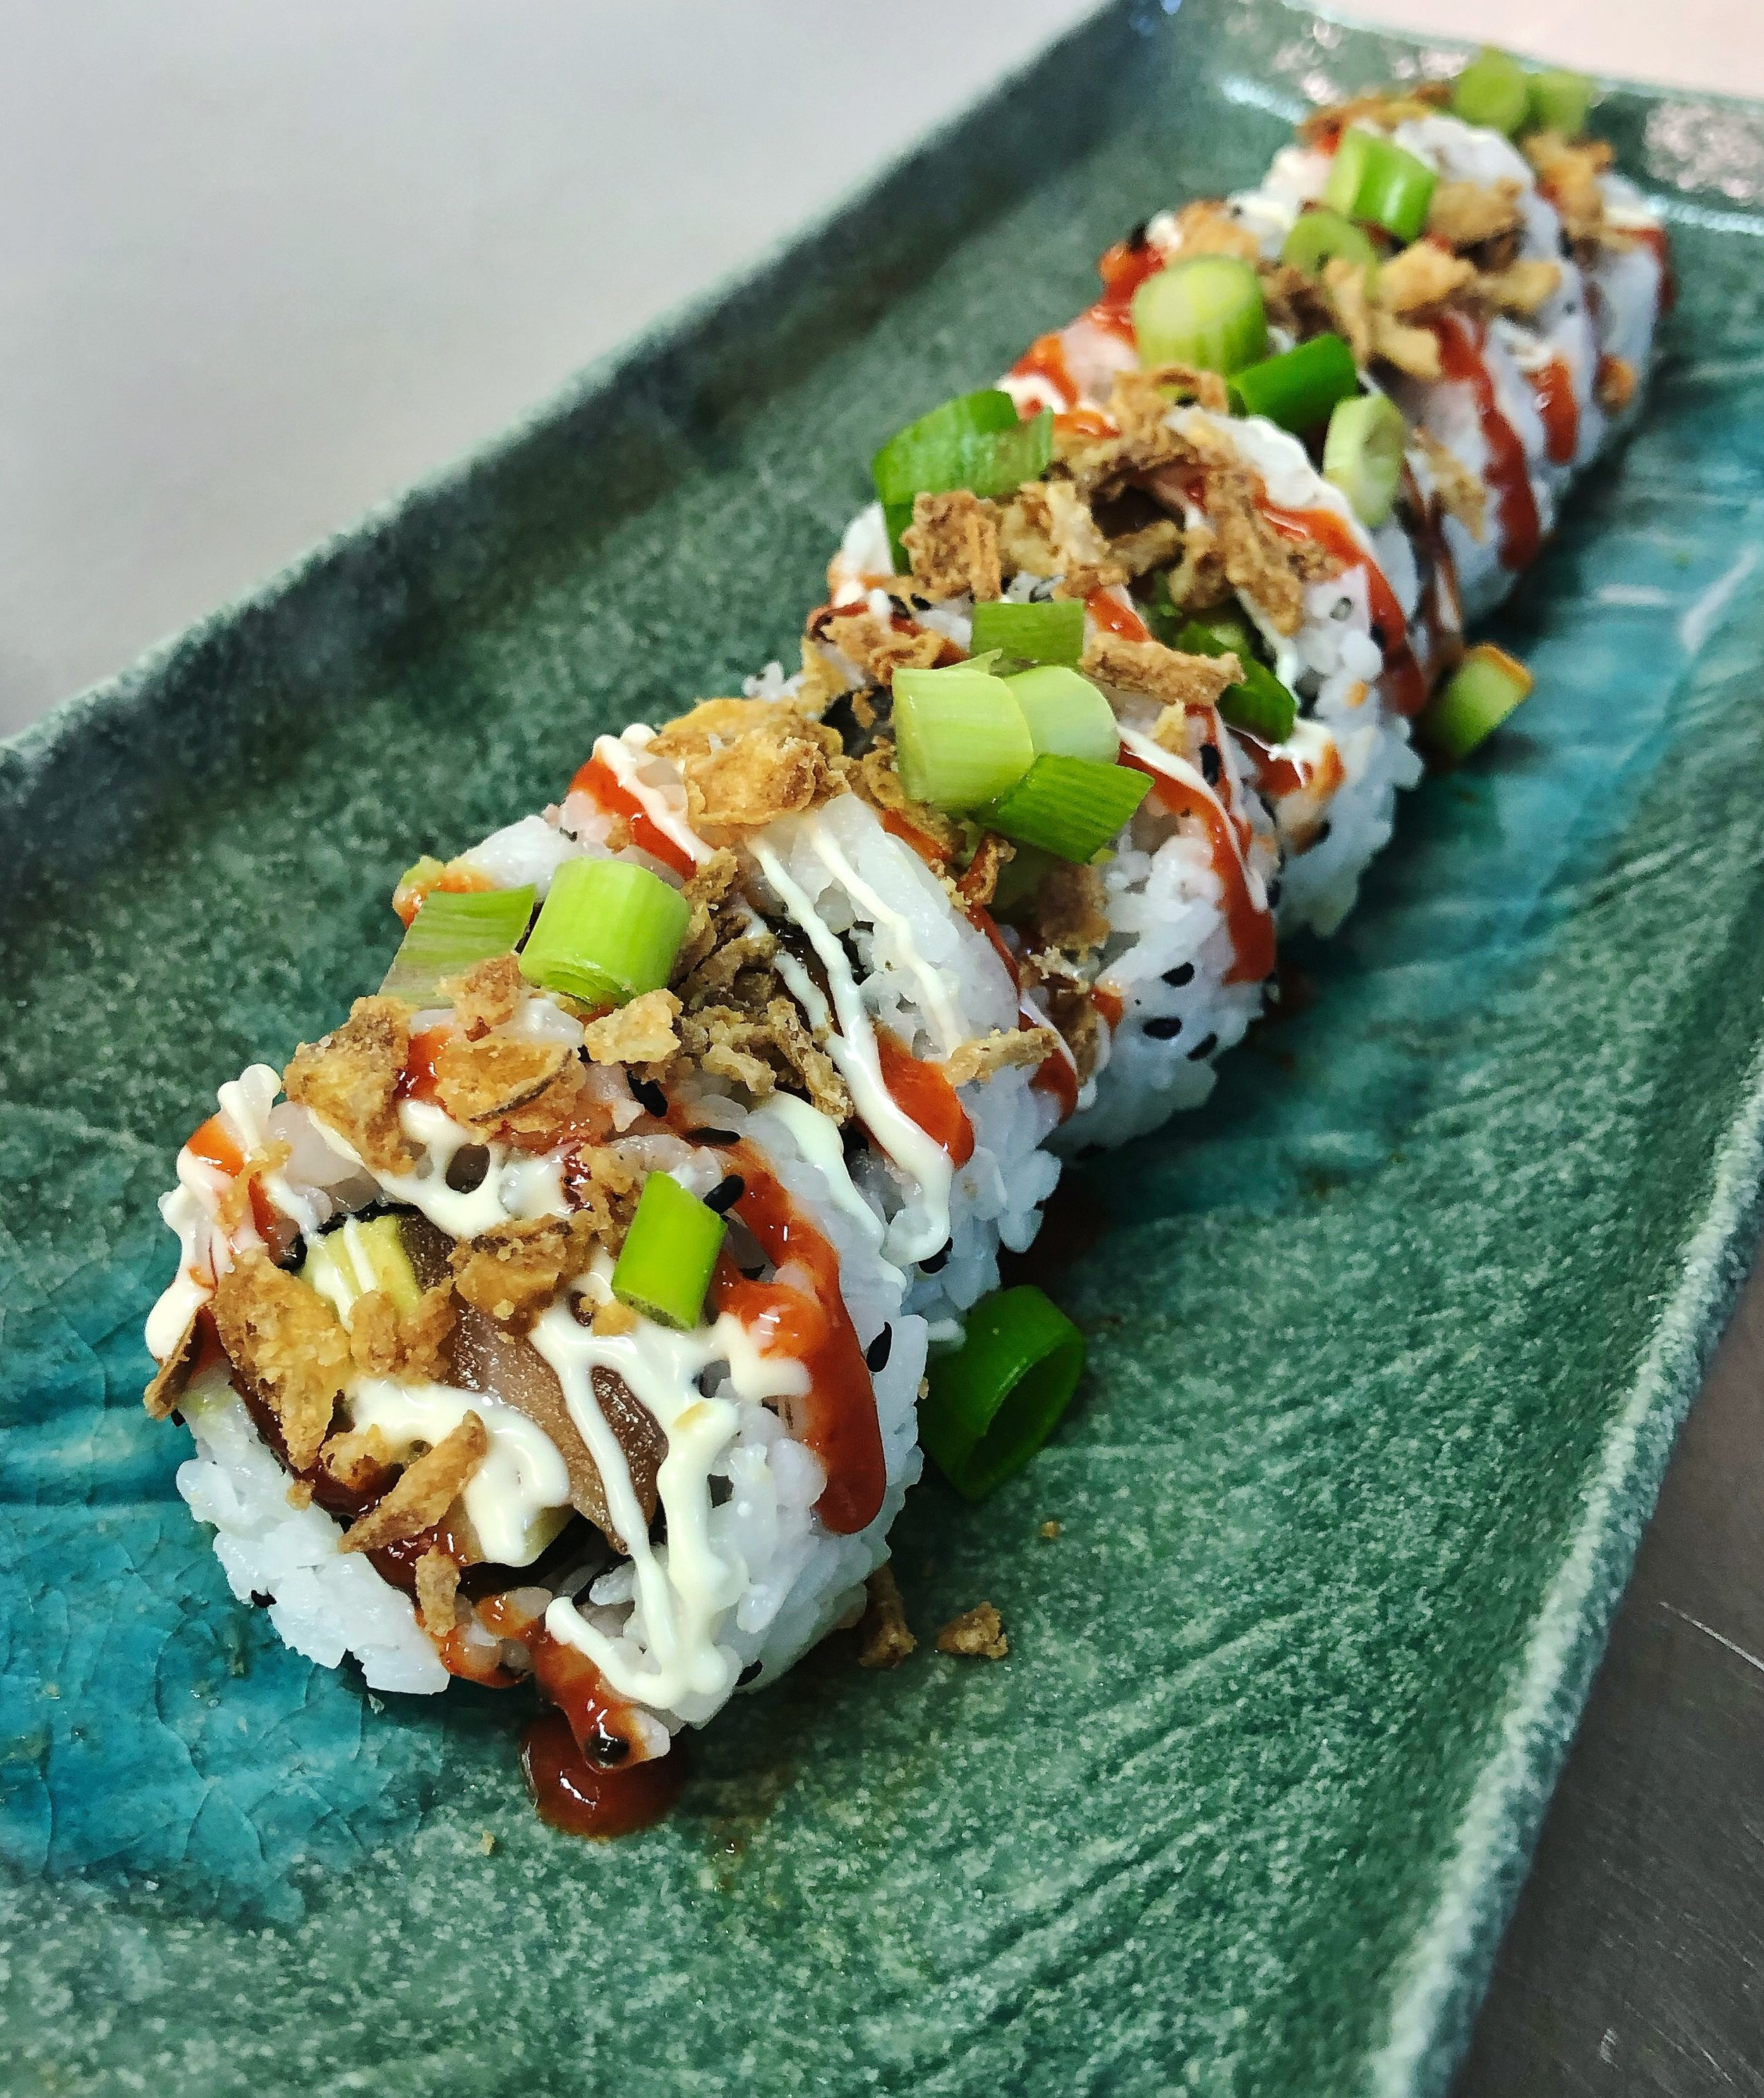 Spicy Salmon Crunch Roll - £7 *contains gluten *  filled with salmon, avocado, cucmber and topped with sriracha, Japanese mayo and crunchy fried onions